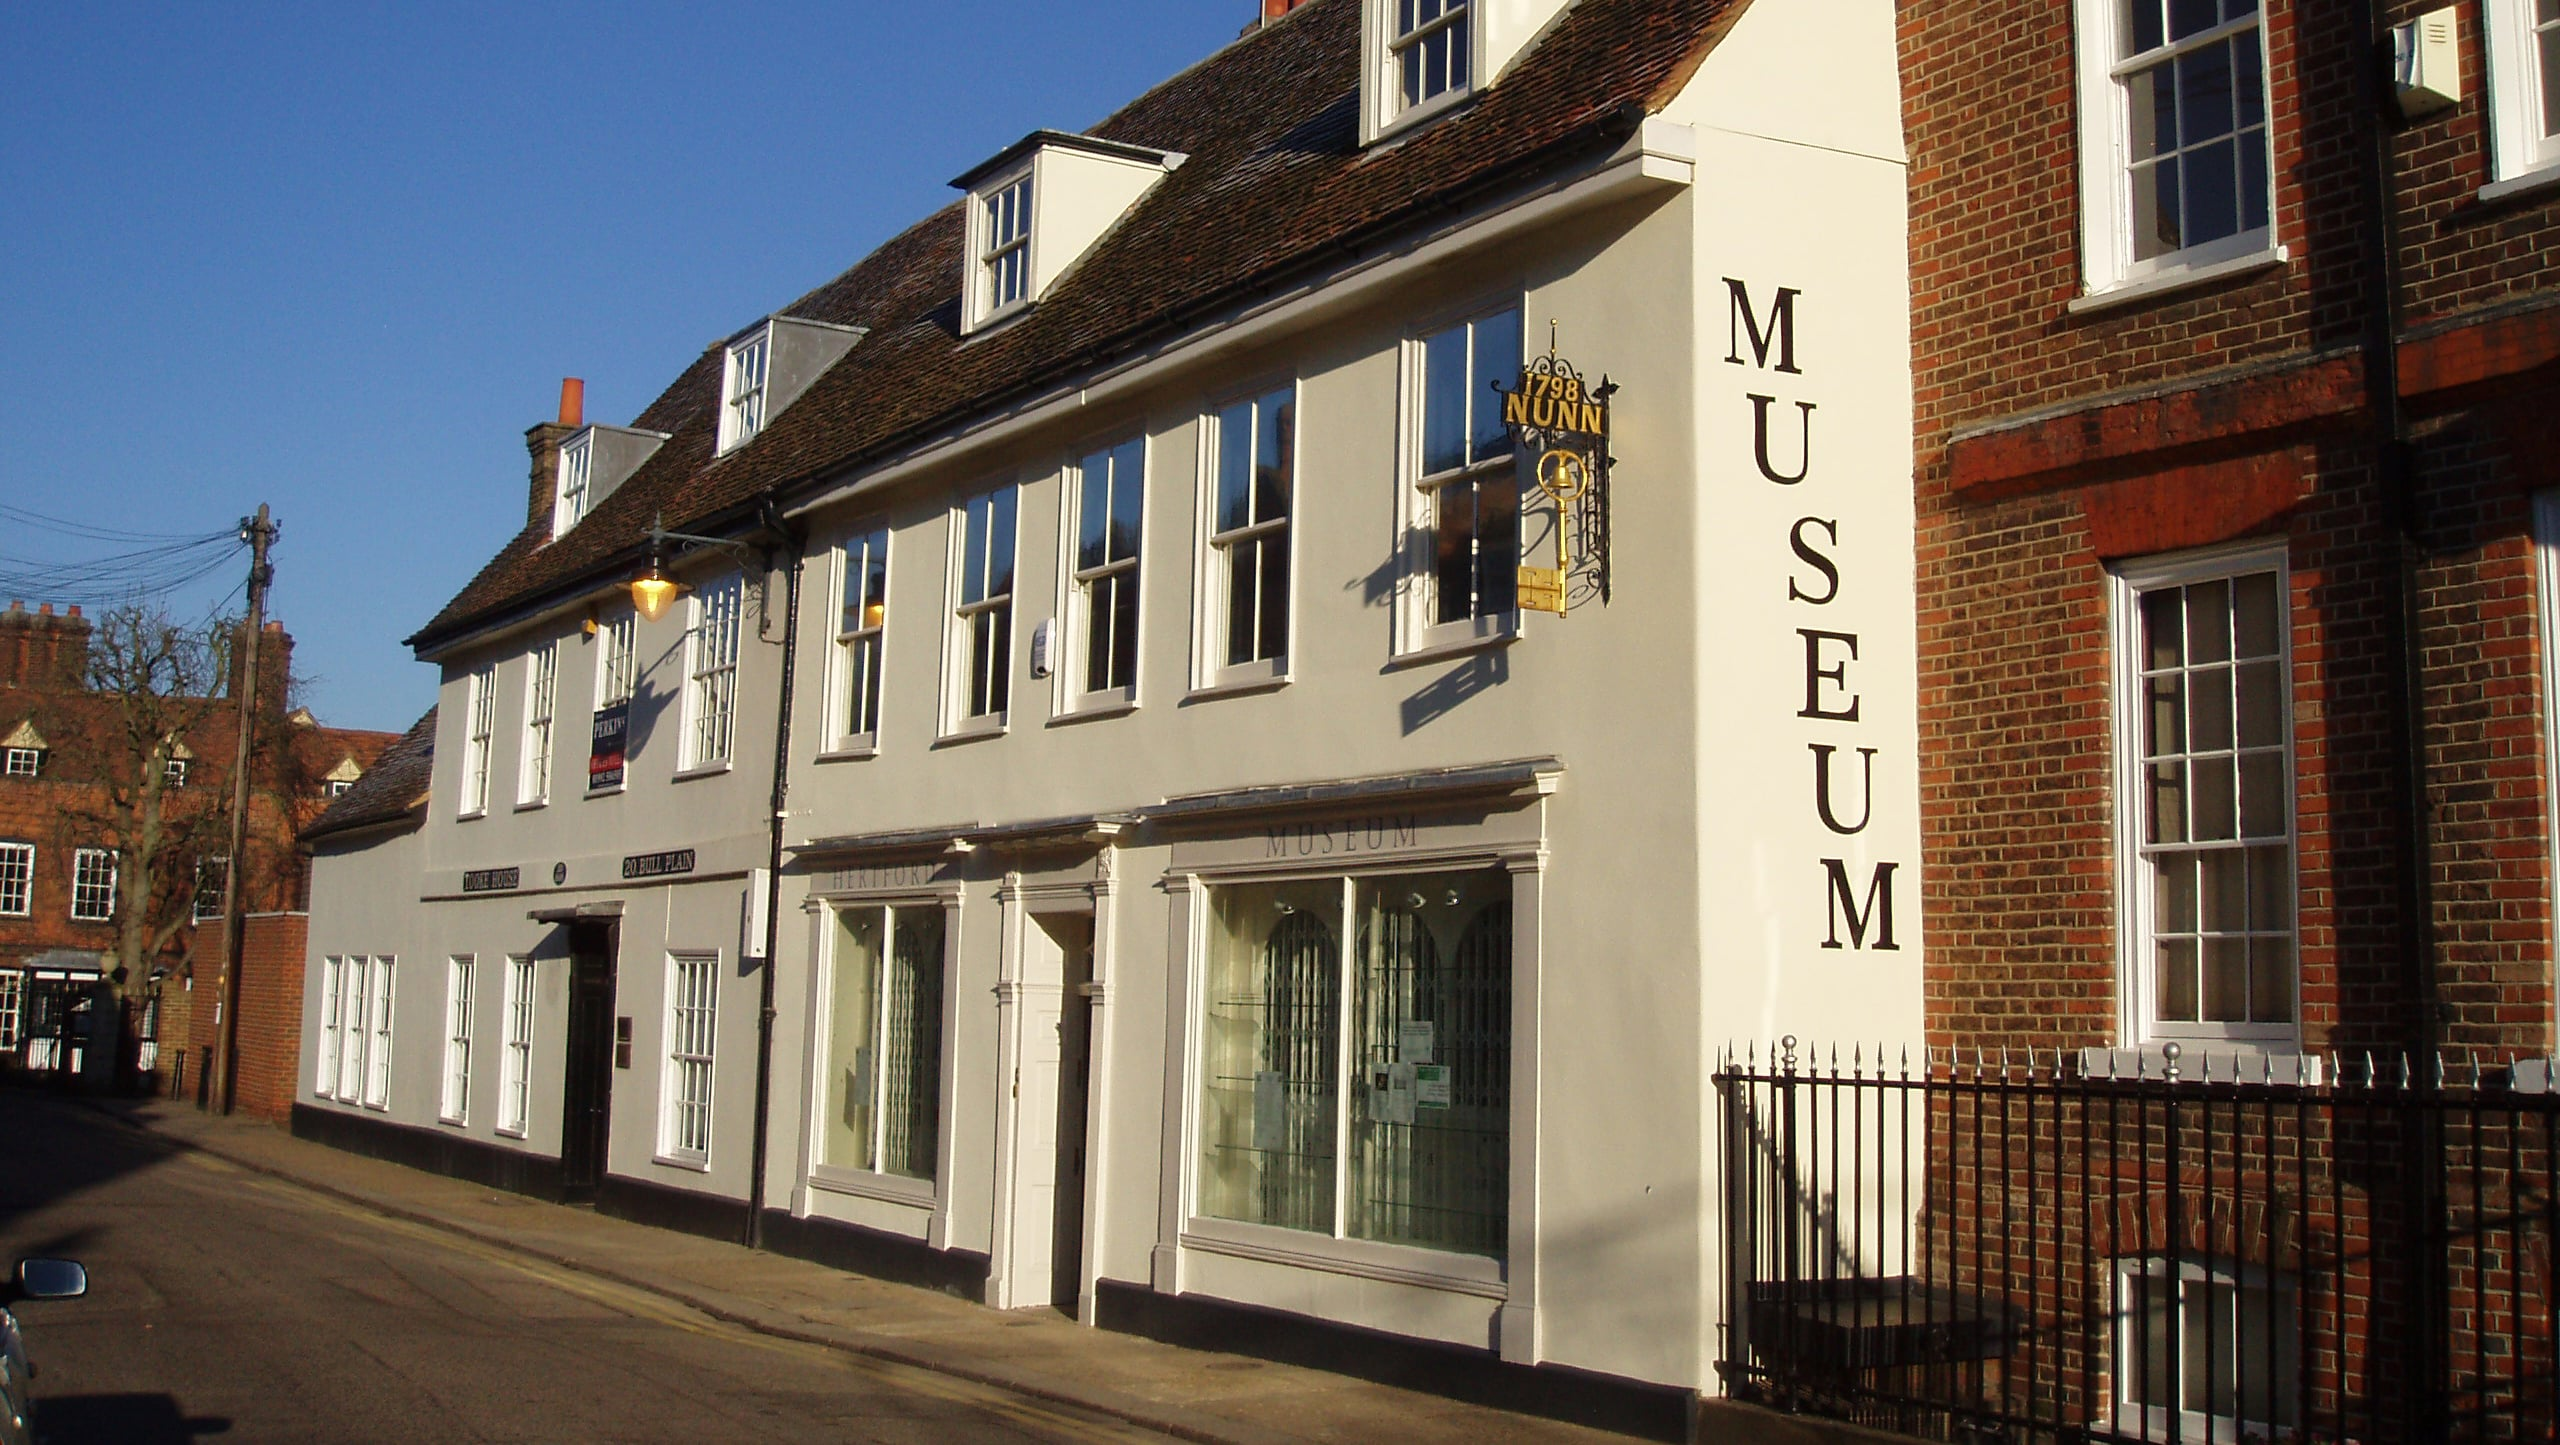 Hertford Museum from the outside